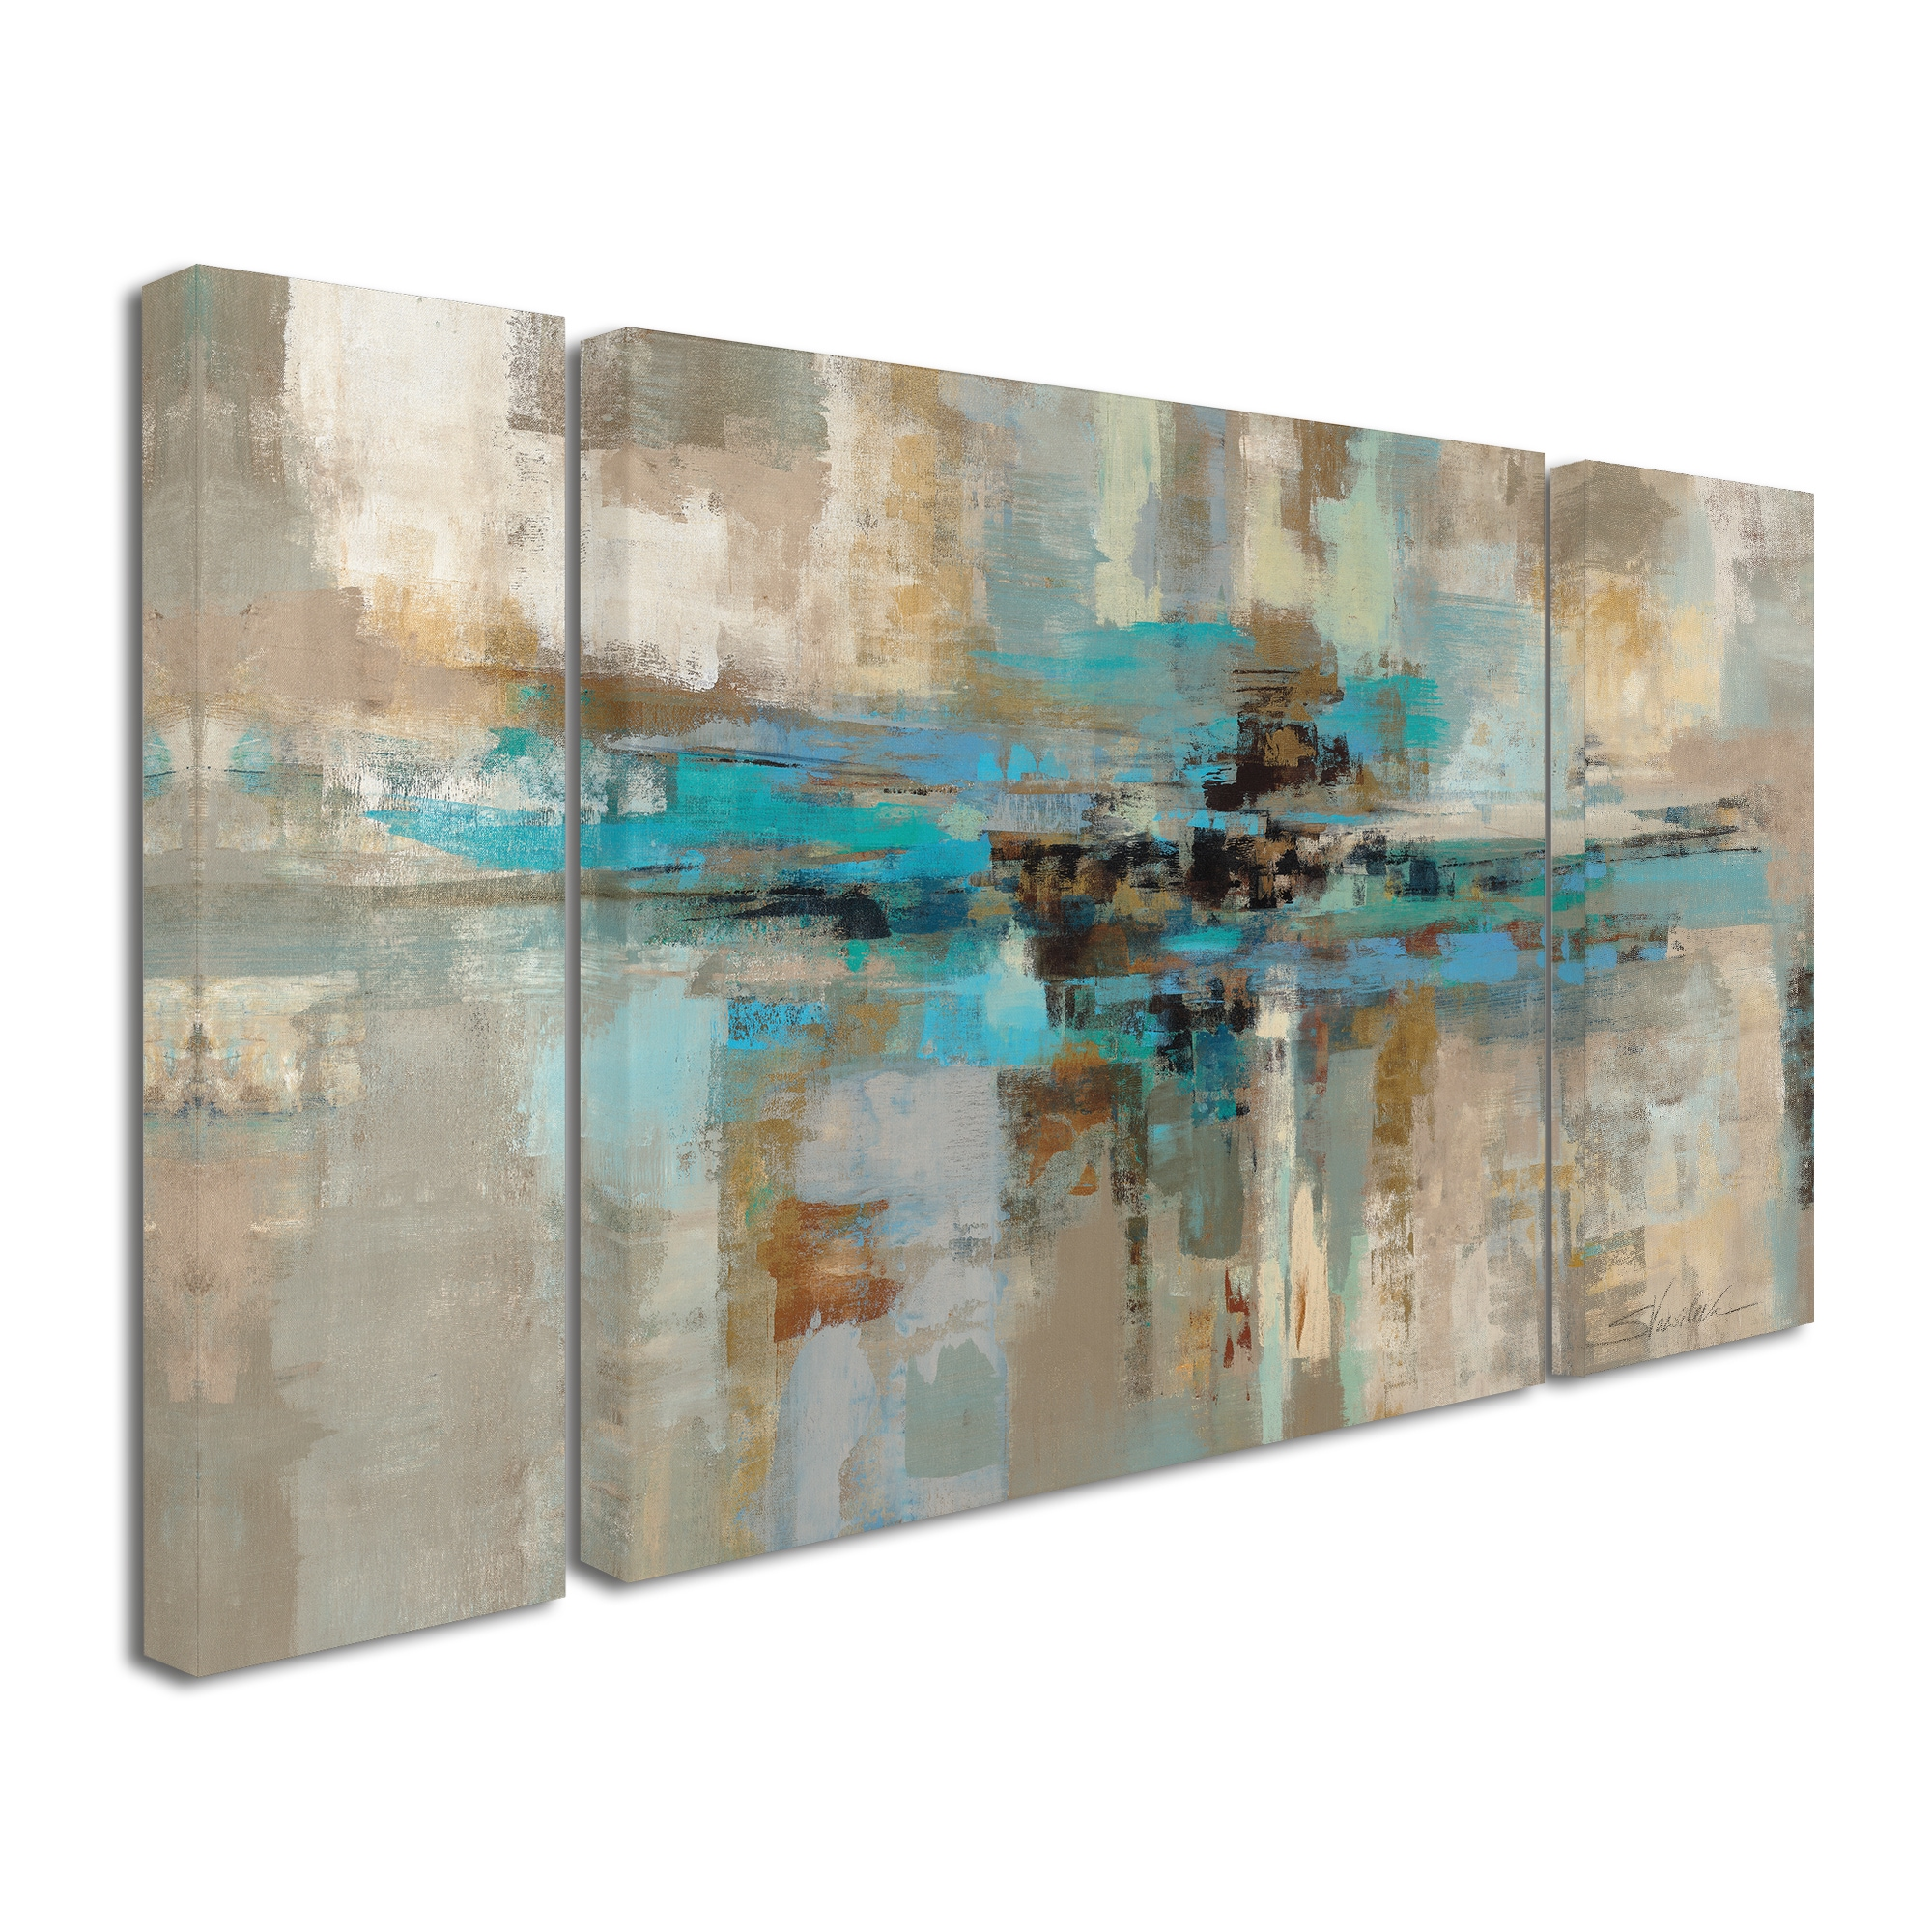 Shop Silvia Vassileva Morning Fjord 3-Piece Canvas Wall Art Set - Free Shipping Today - Overstock.com - 10511319  sc 1 st  Overstock.com & Shop Silvia Vassileva Morning Fjord 3-Piece Canvas Wall Art Set ...